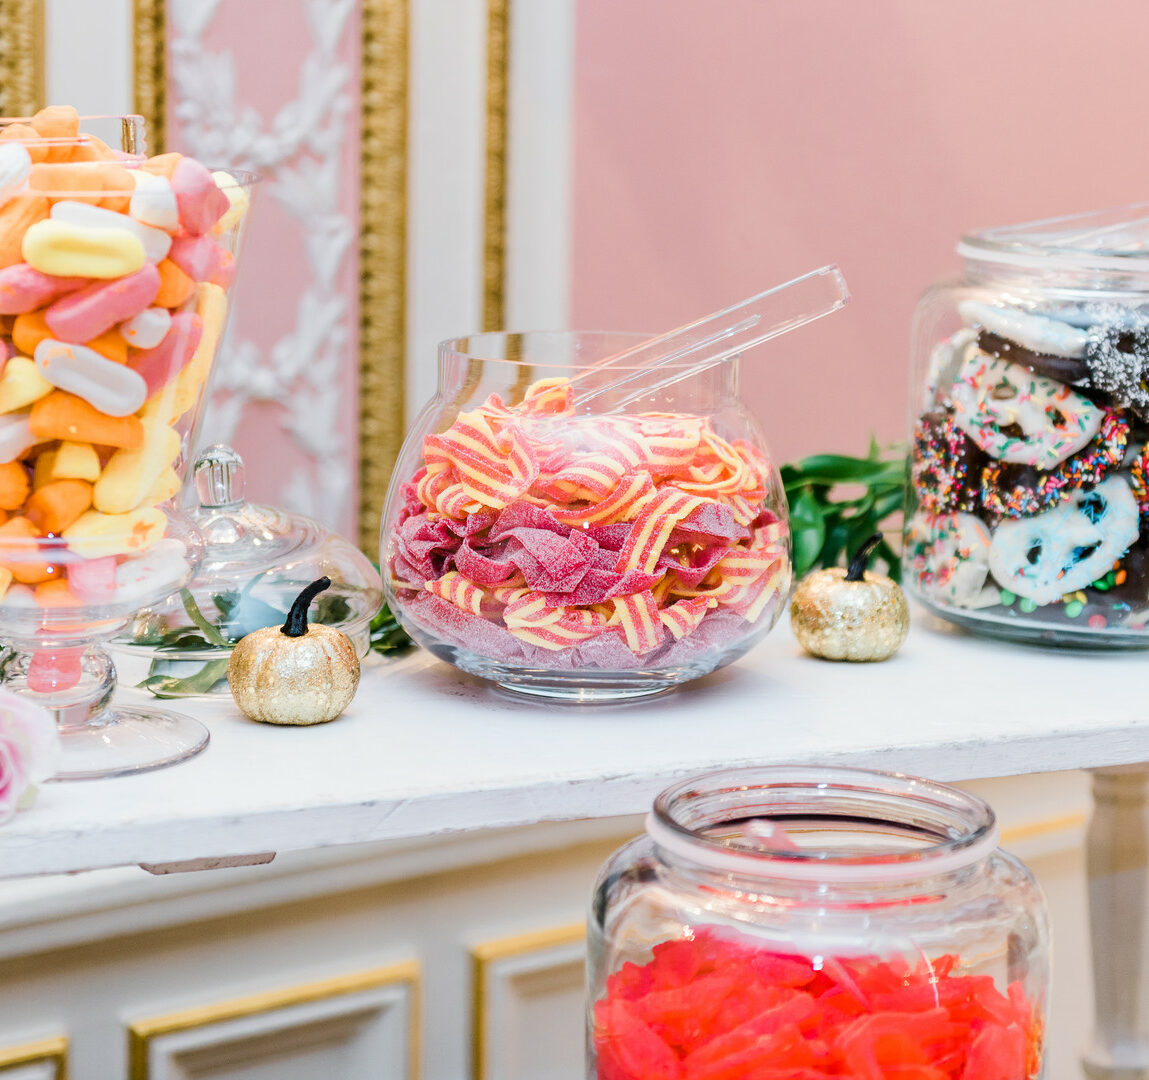 Wedding cake alternative sweets and candy bar.